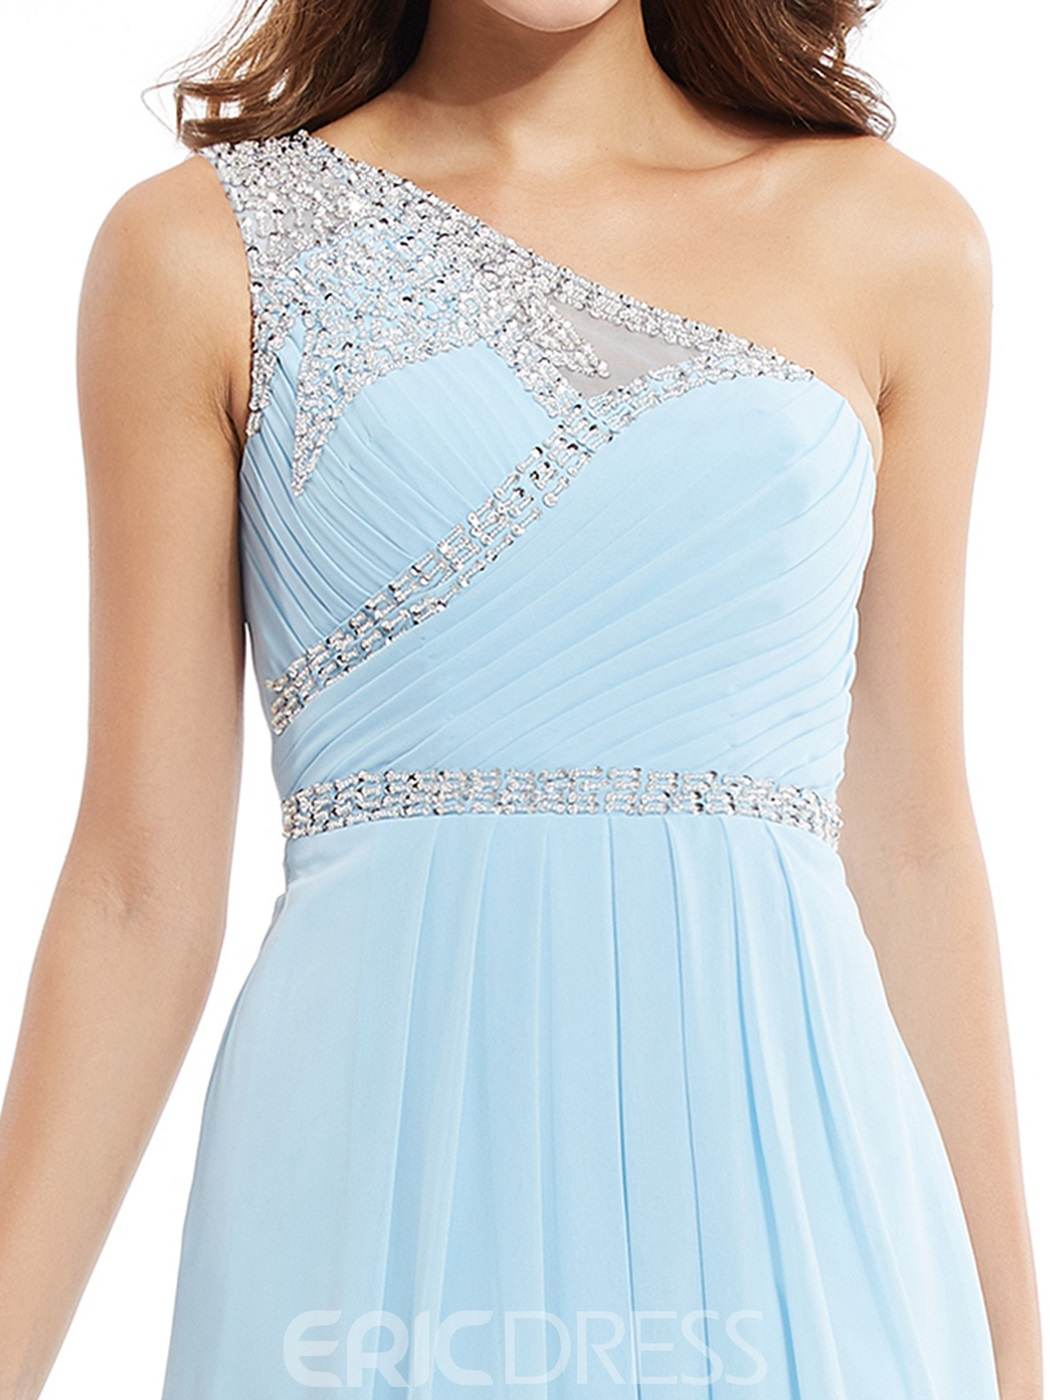 Ericdress One Shoulder Zipper-Up Beaded A Line Long Prom Dress